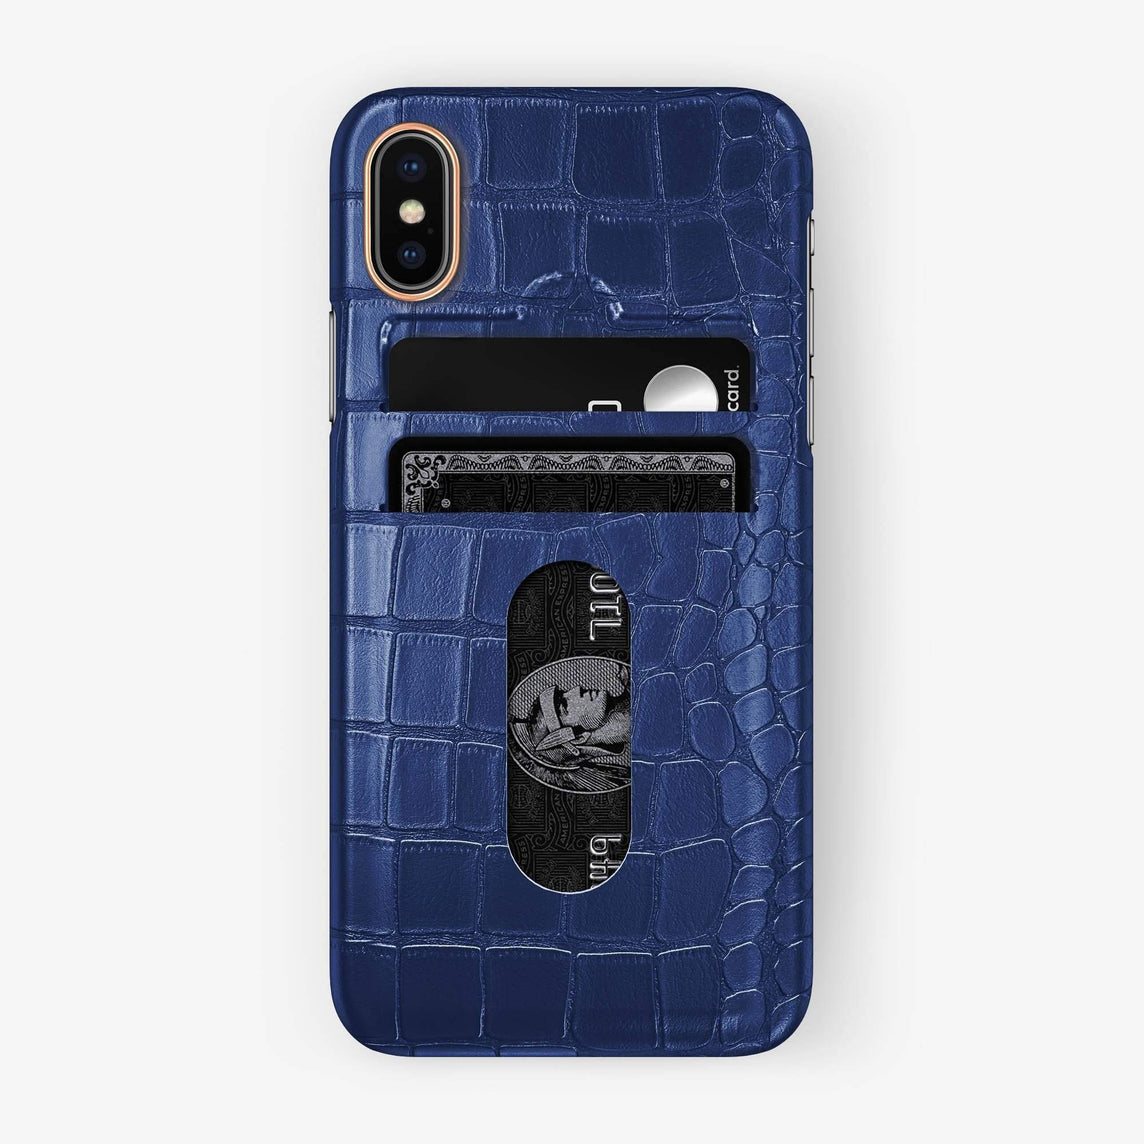 Alligator Card Holder Case iPhone Xs Max | Navy Blue - Rose Gold - Hadoro